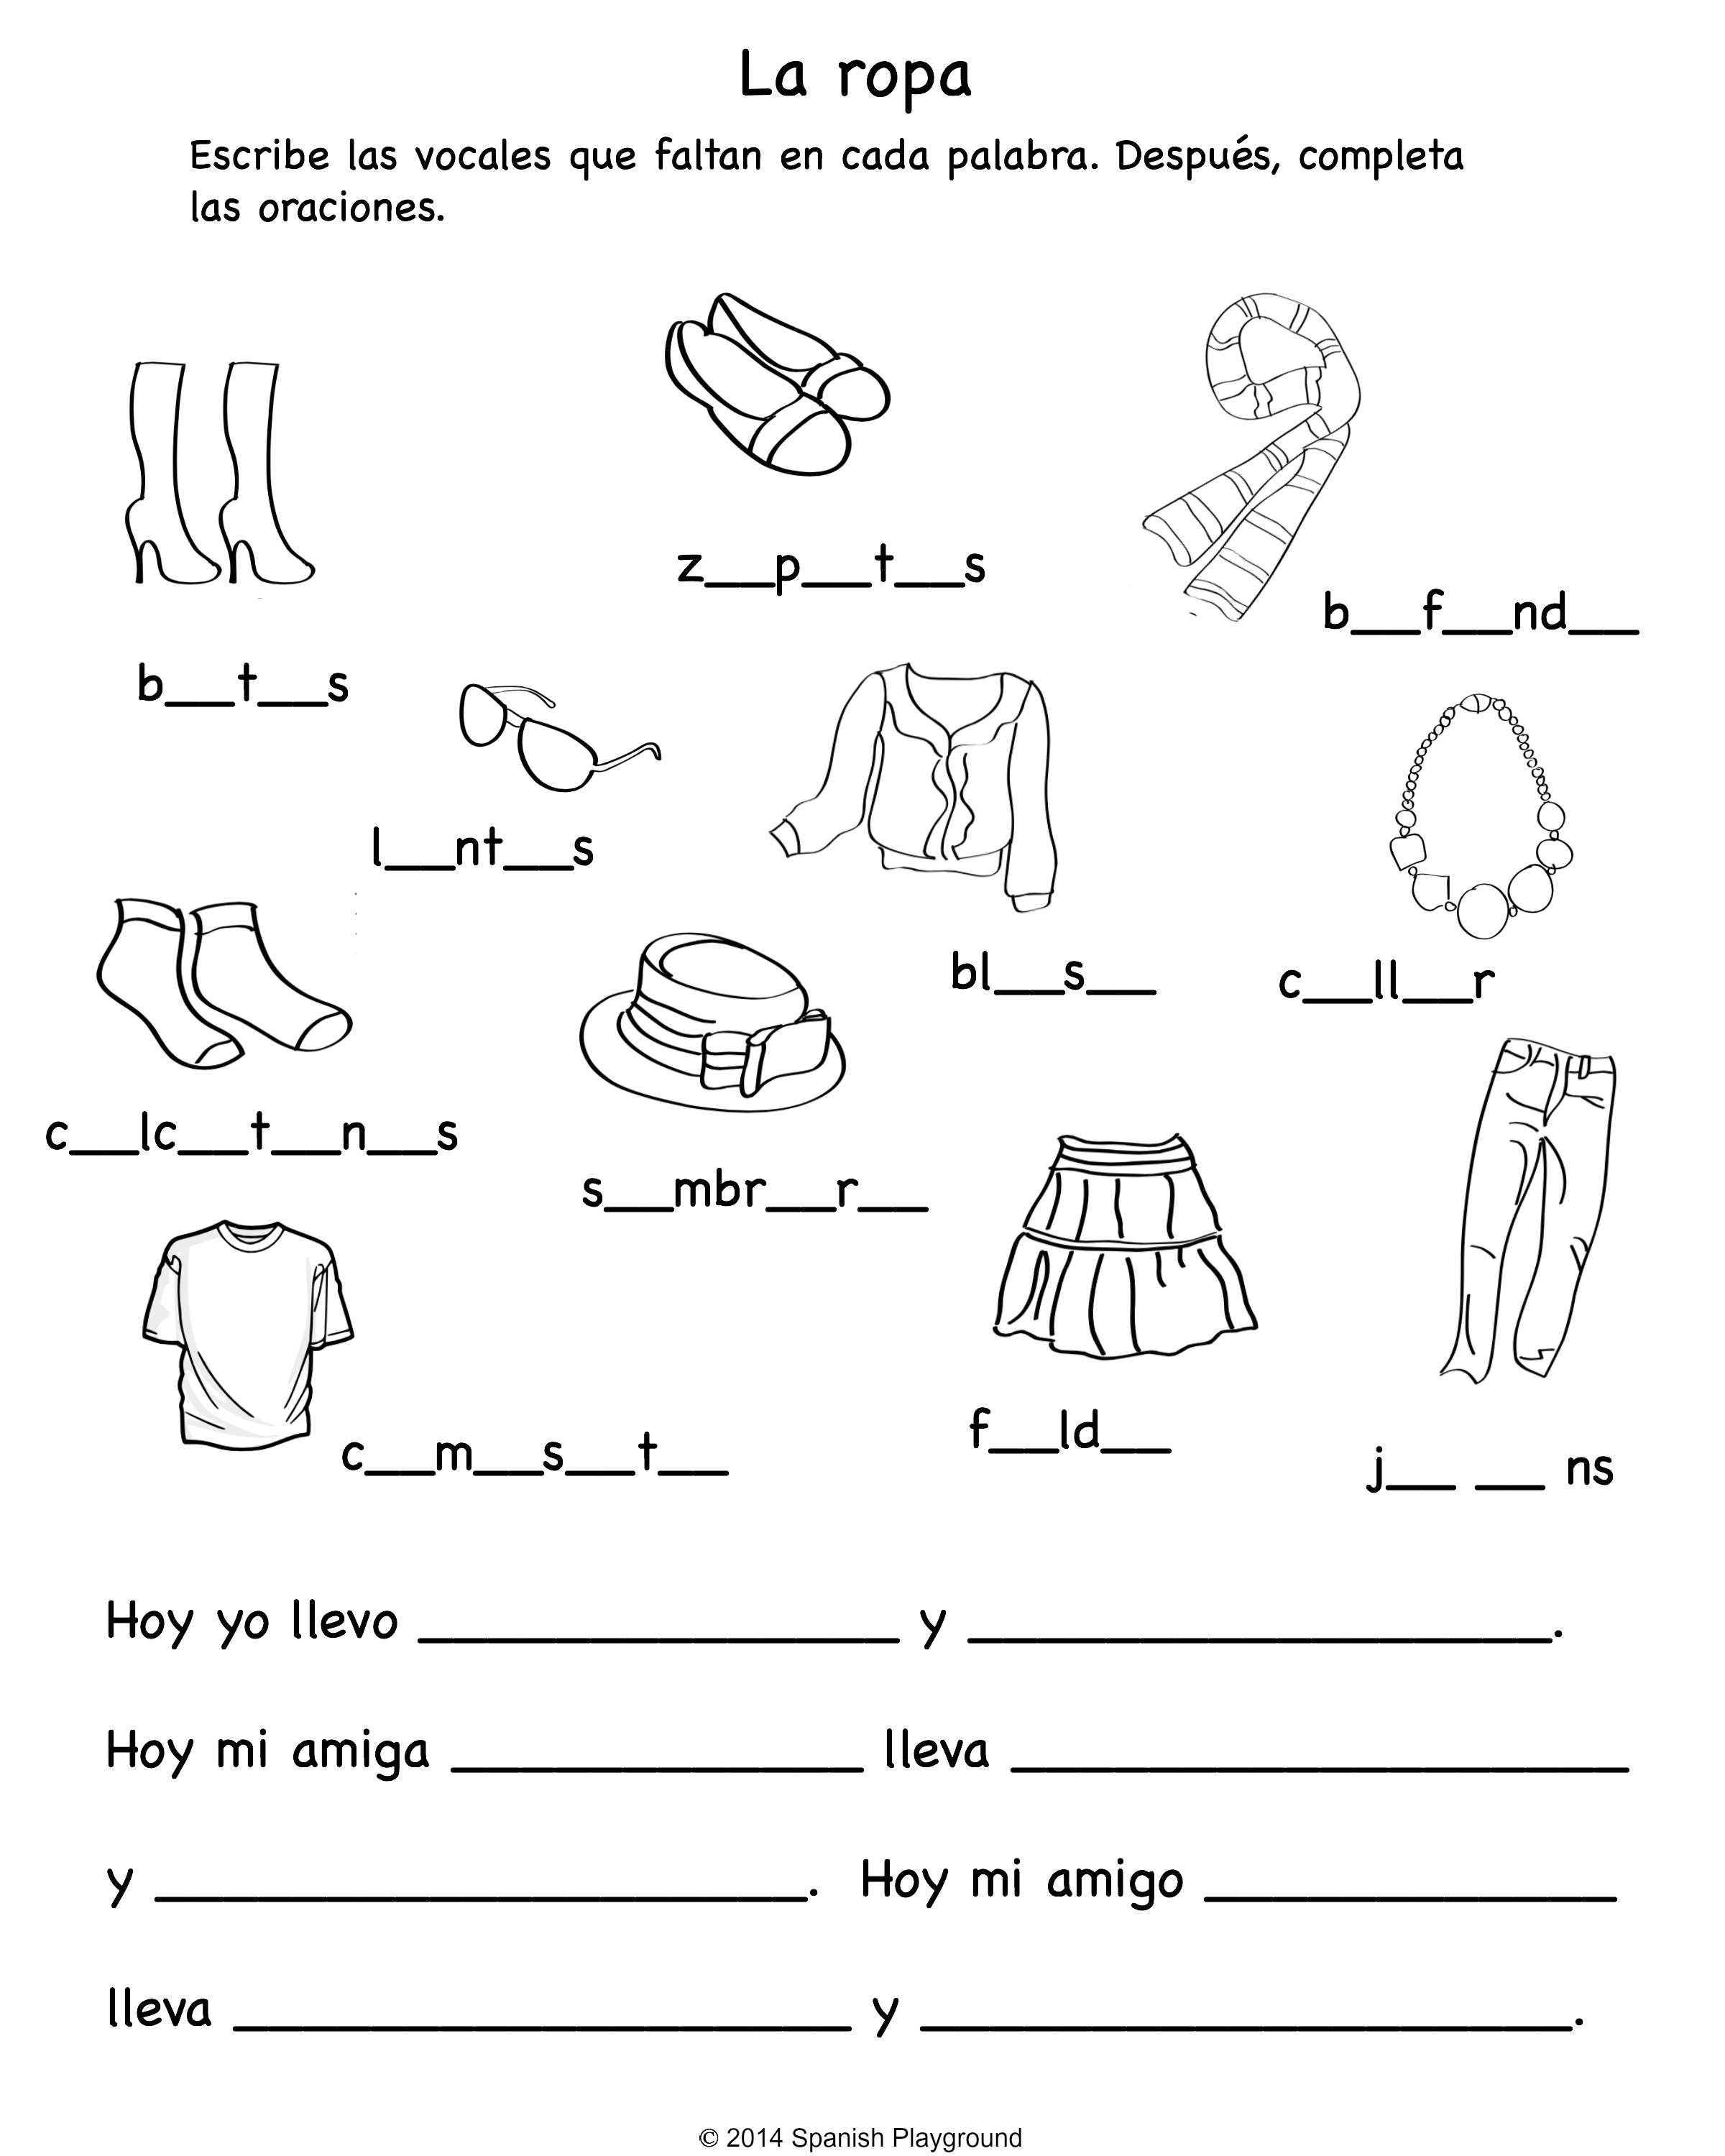 Worksheet Related To Clothes